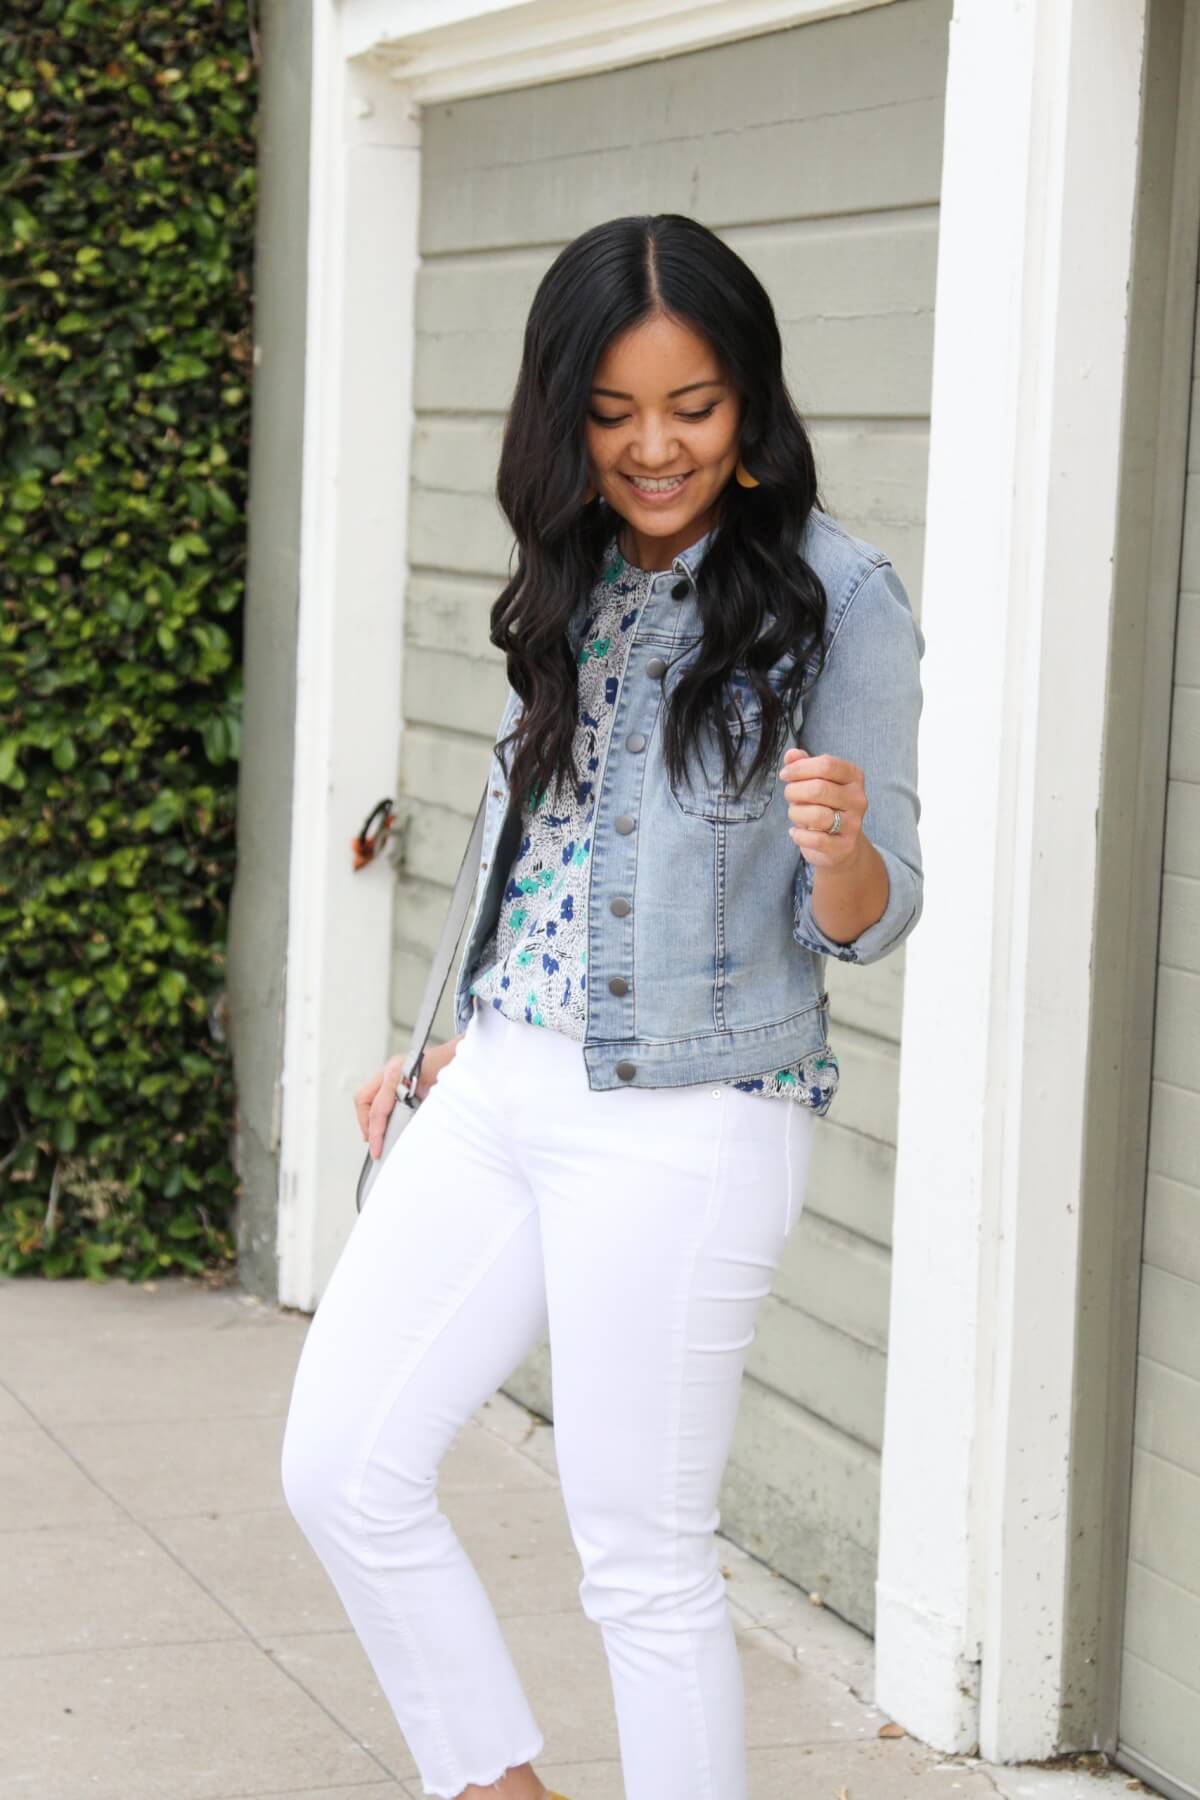 Elevated Casual Outfit: blue and green floral top + white jeans + denim jacket + yellow earrings + gray bag